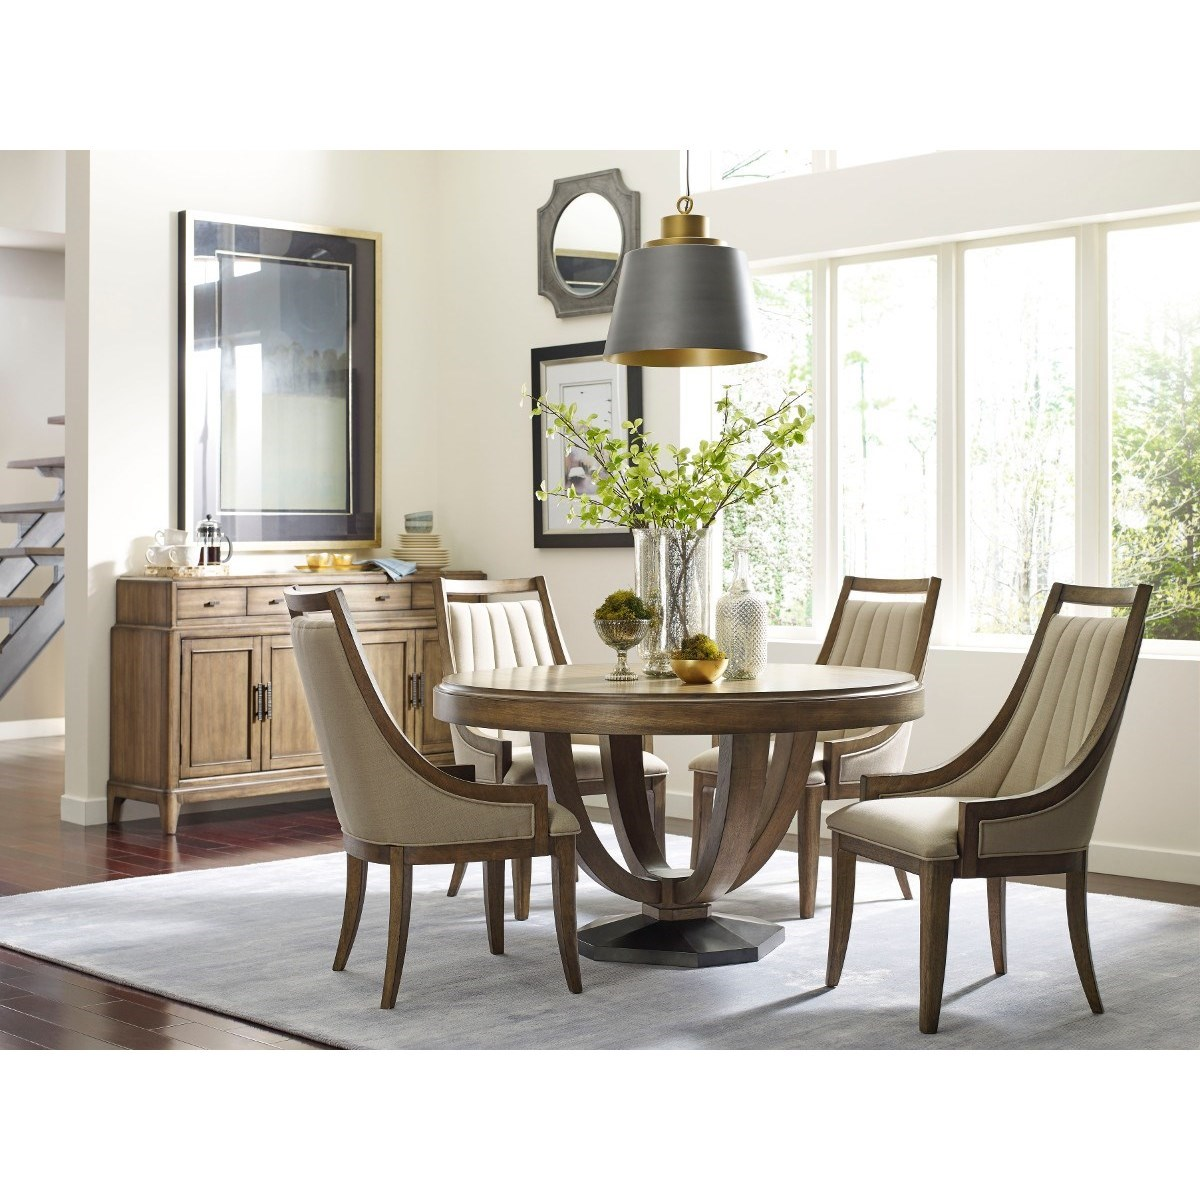 American drew evoke casual dining room group for Informal dining